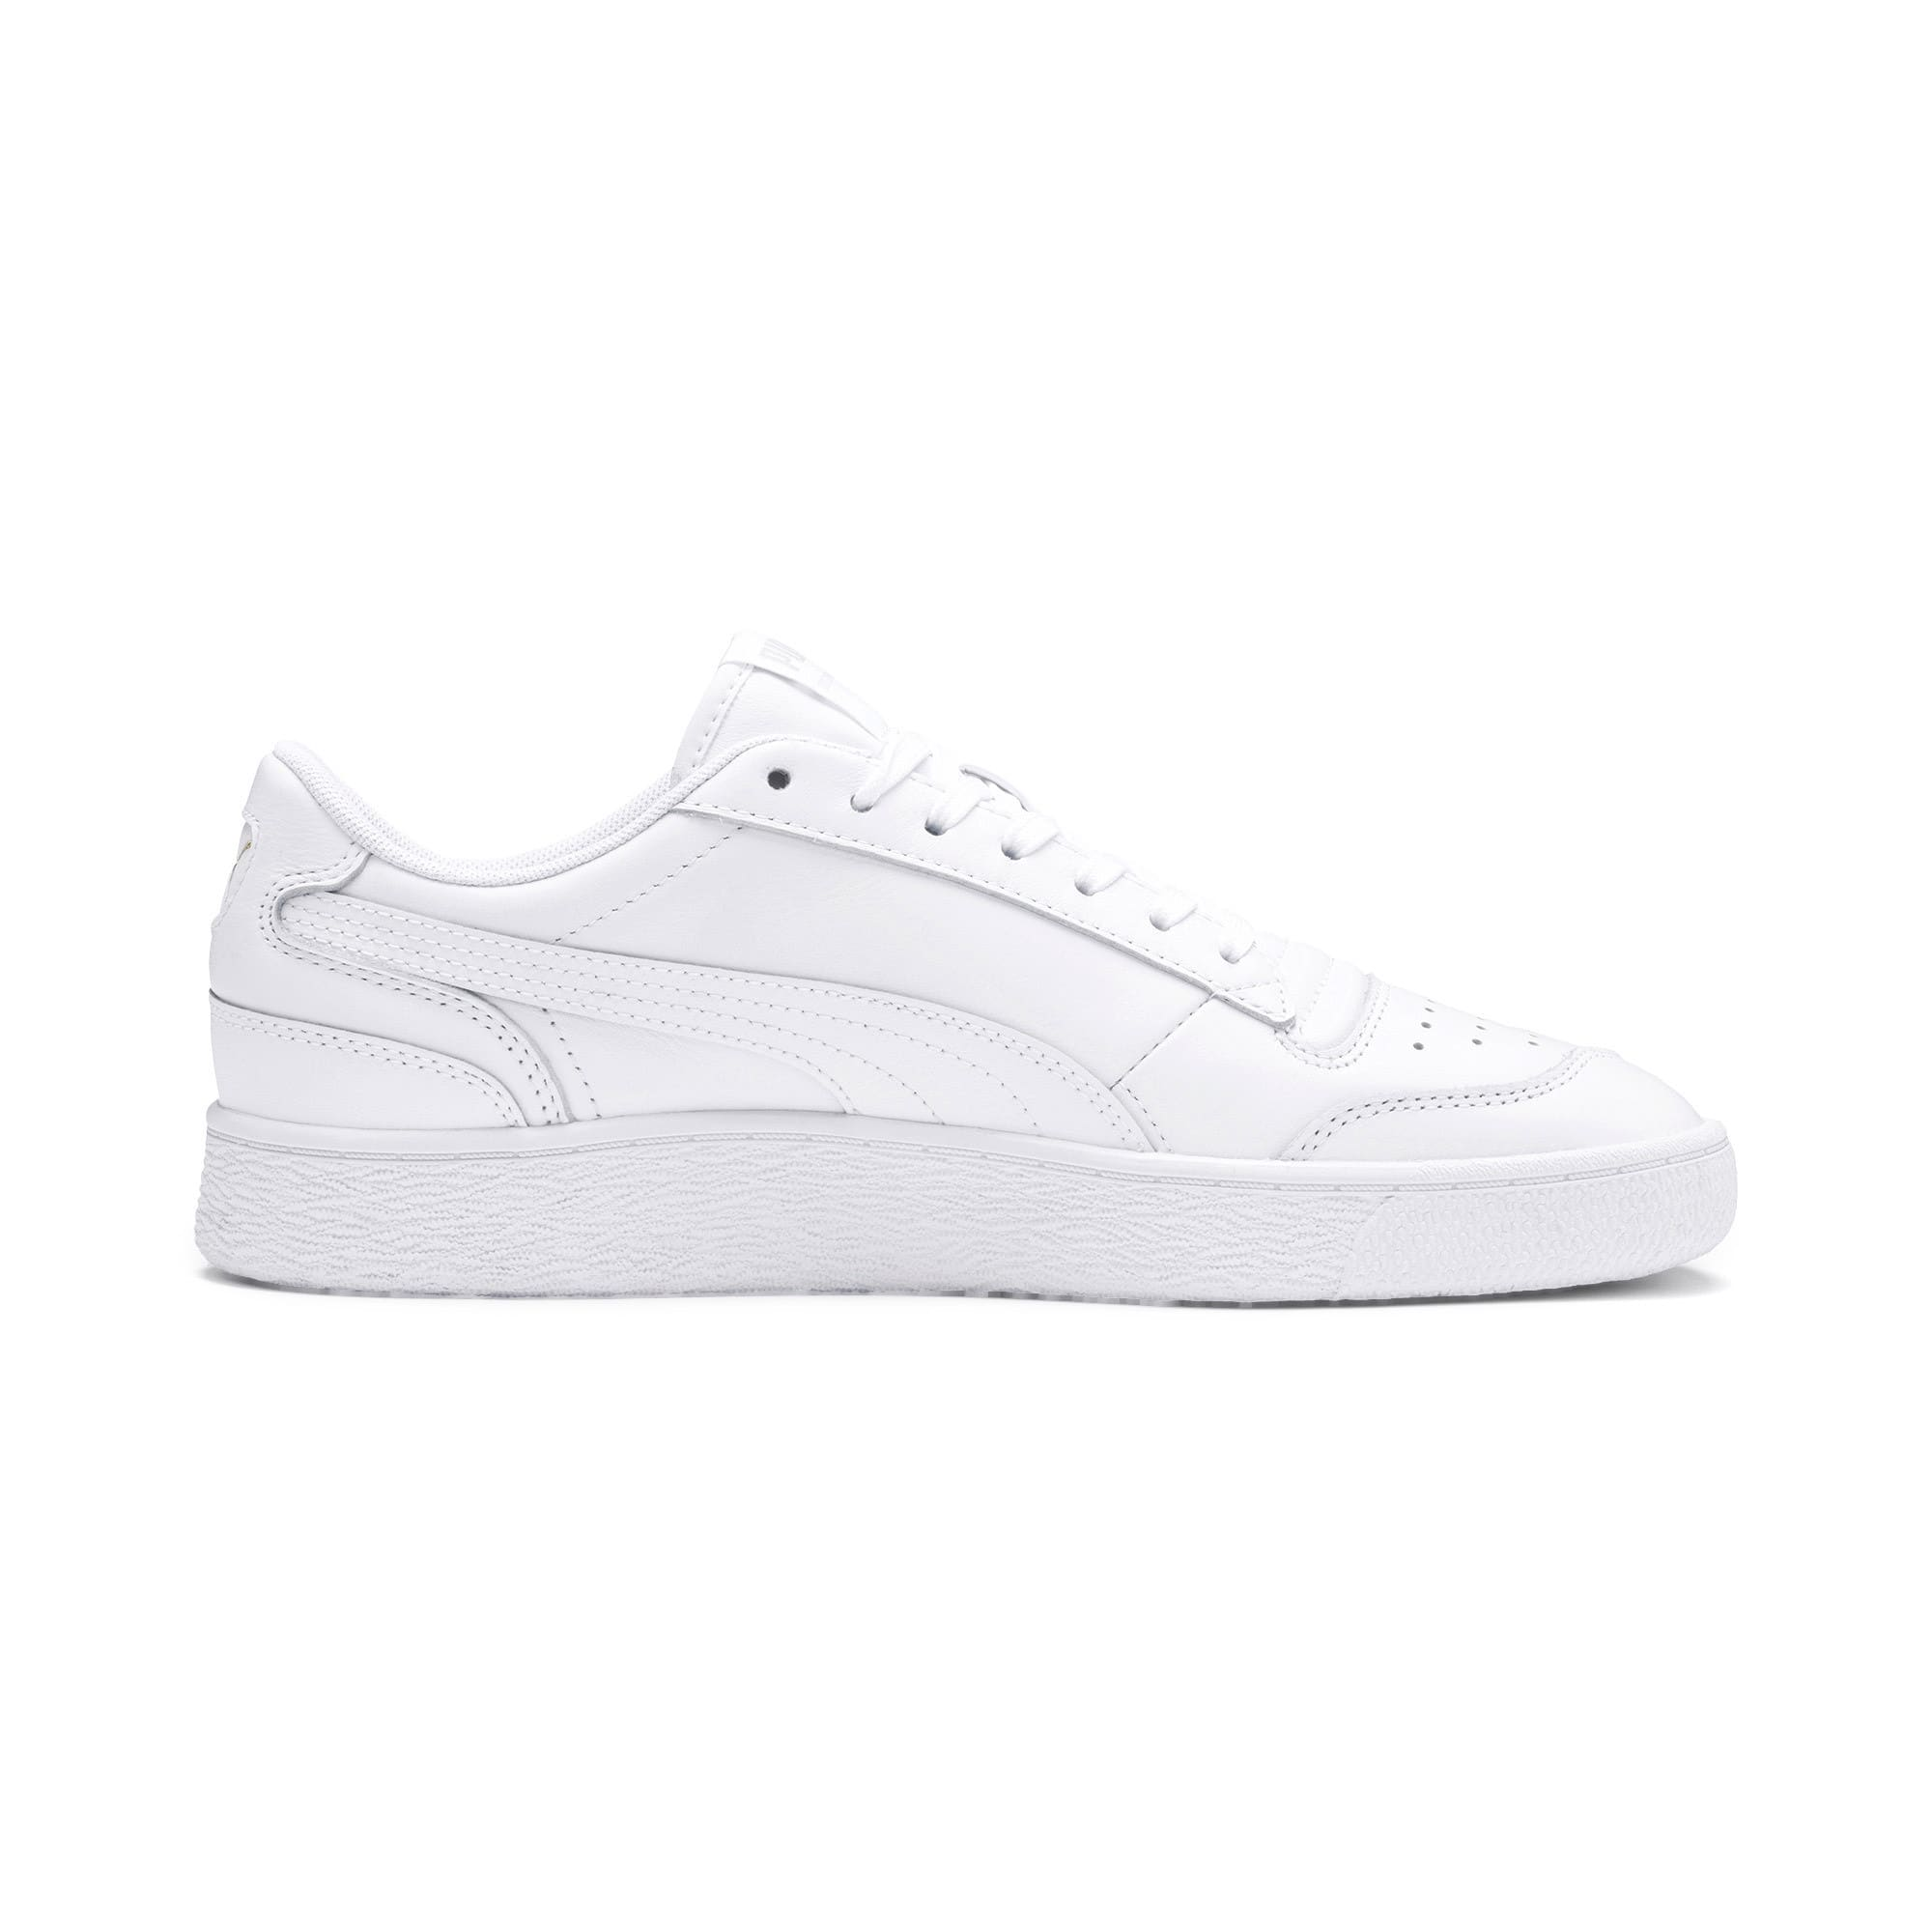 Thumbnail 6 of Ralph Sampson Lo Sneakers, Puma Wht-Puma Wht-Puma Wht, medium